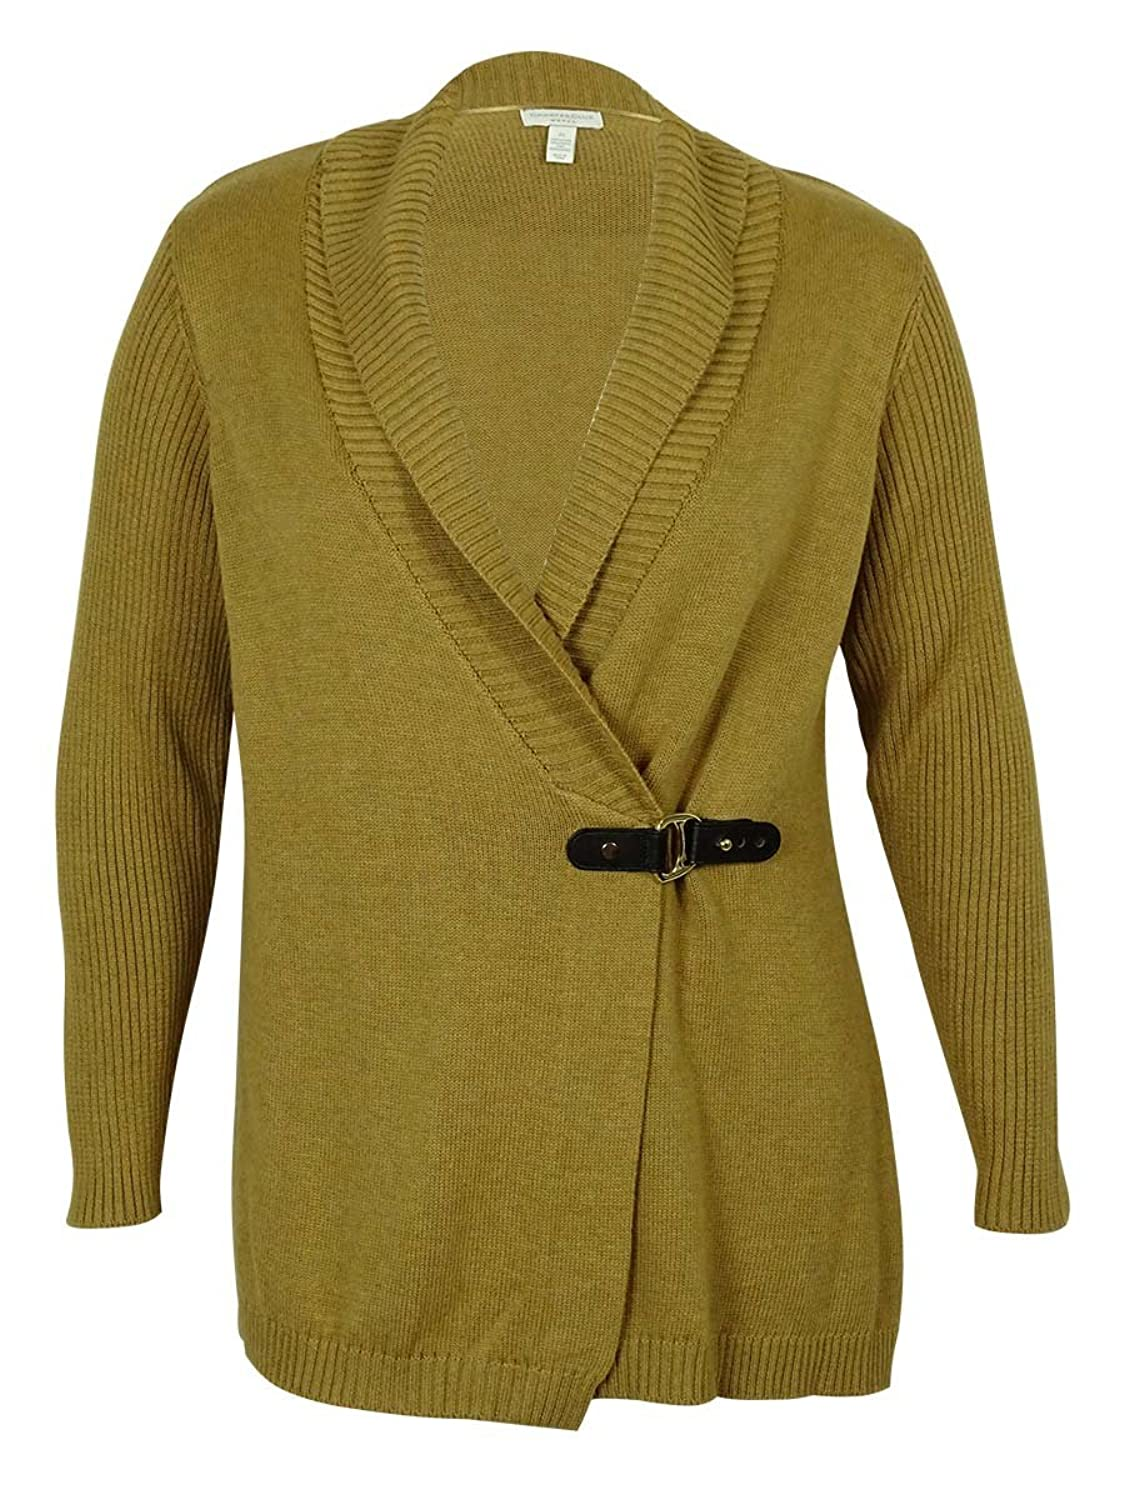 Charter Club Buckle Detailed Cardigan-Sweater